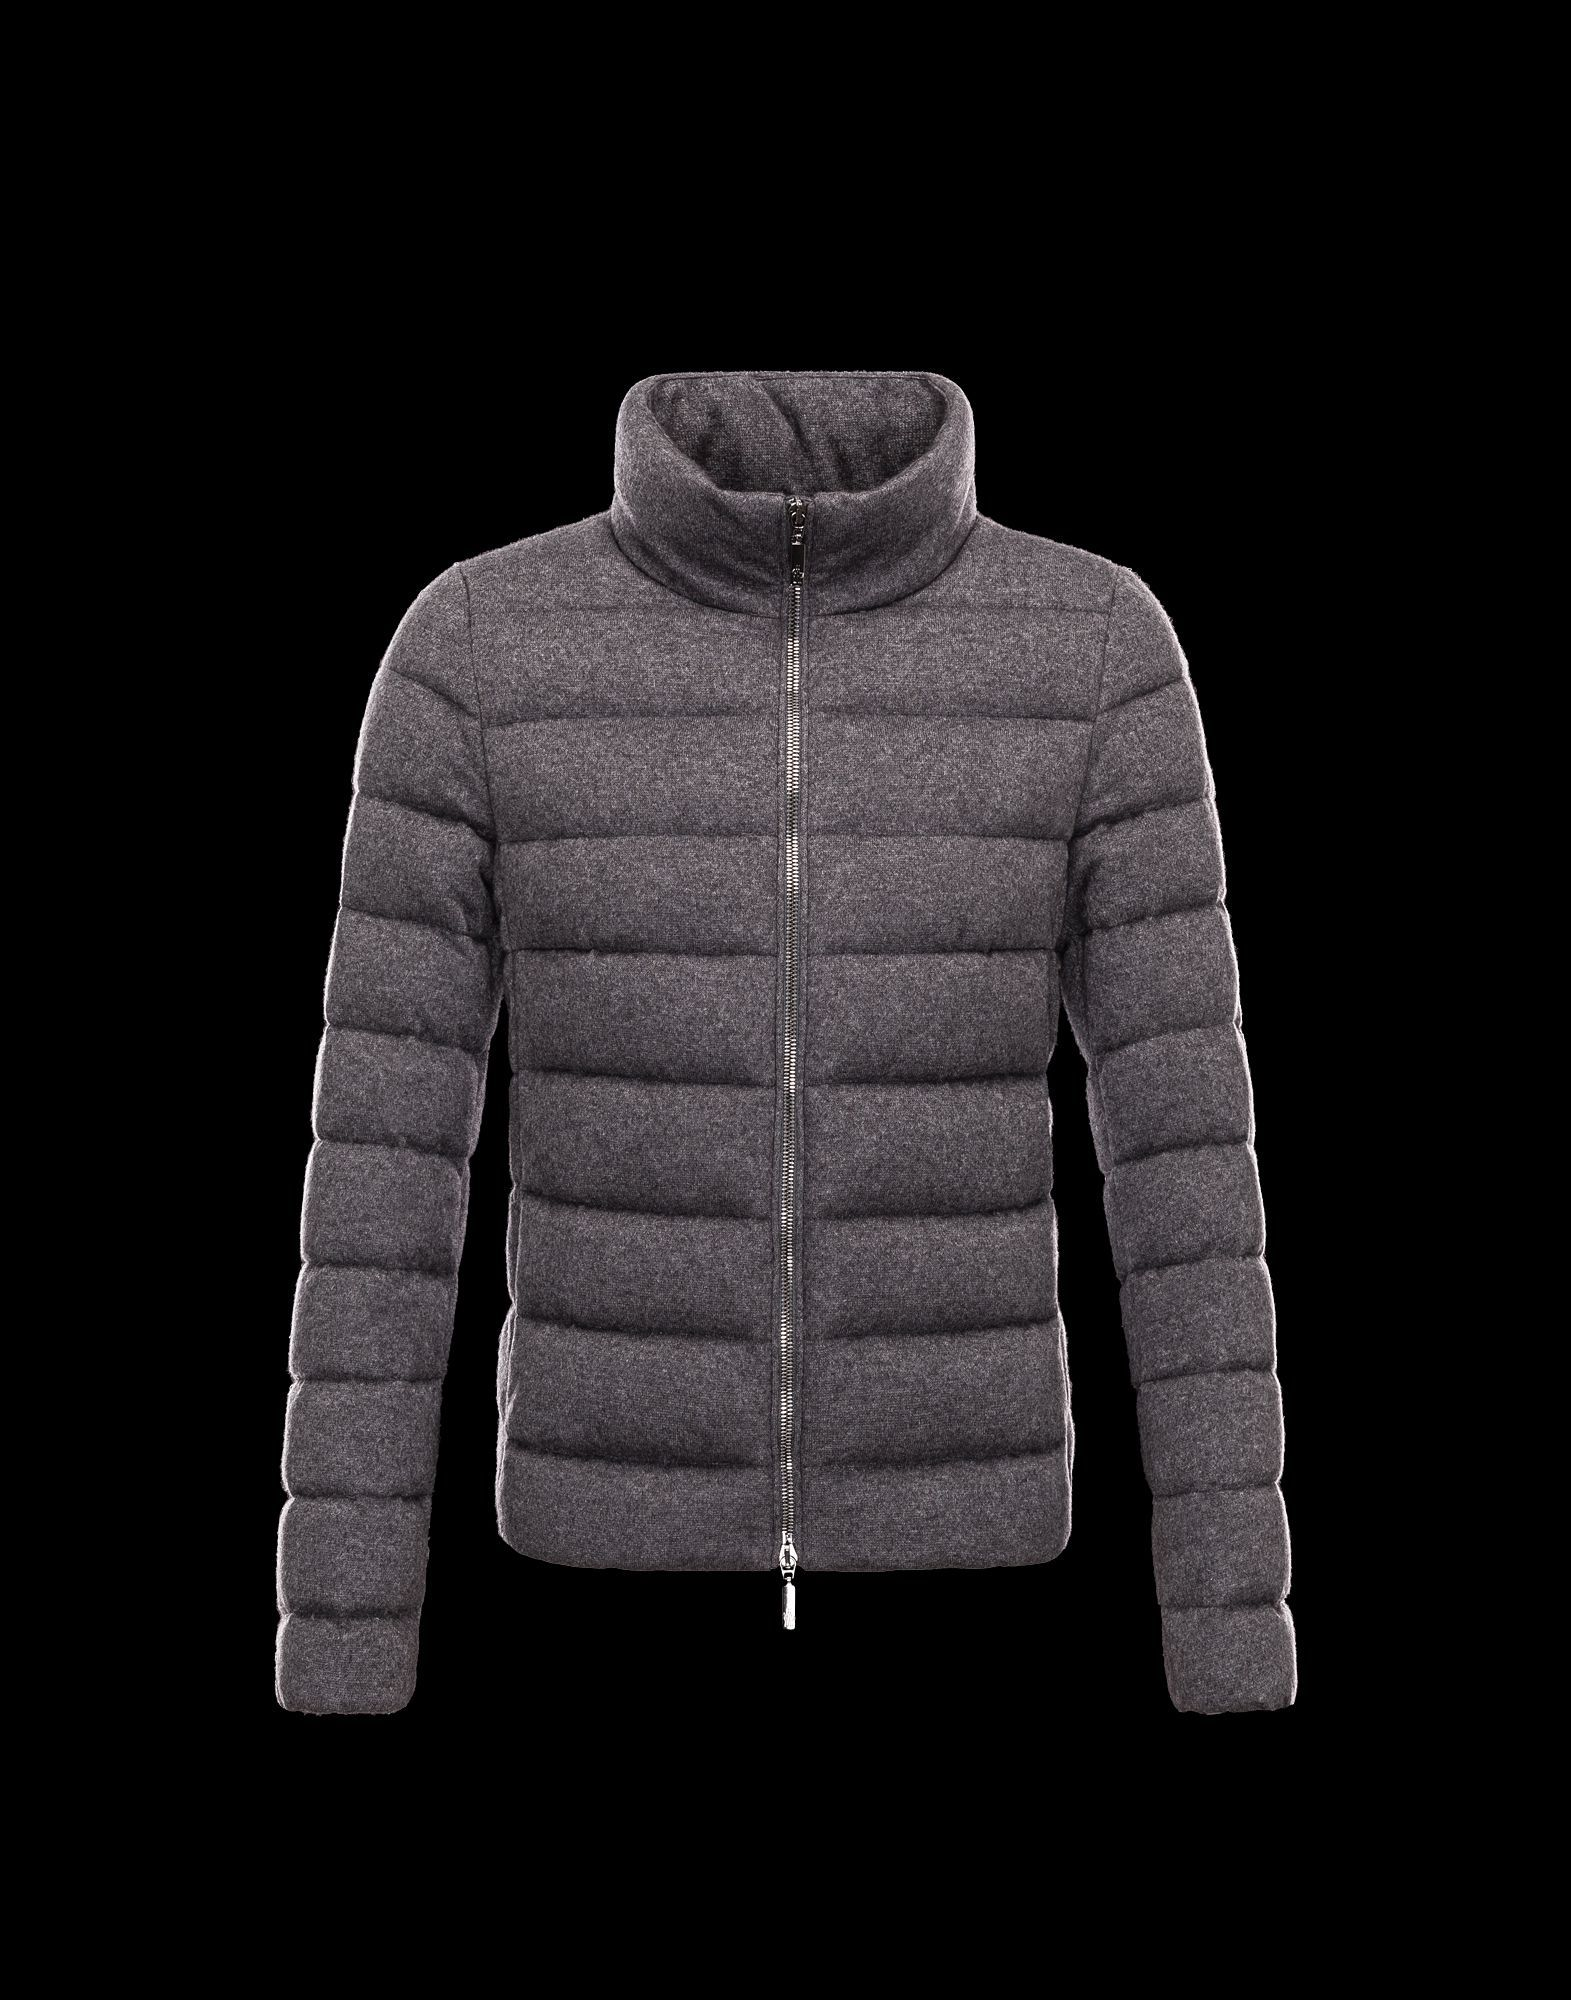 Moncler Women Jacket----only 369.00 Up to an Extra 70% off! Shop Moncler  Women Jacket now on Moncler-outletsto...! www.moncler-outle. 50d94a4315a